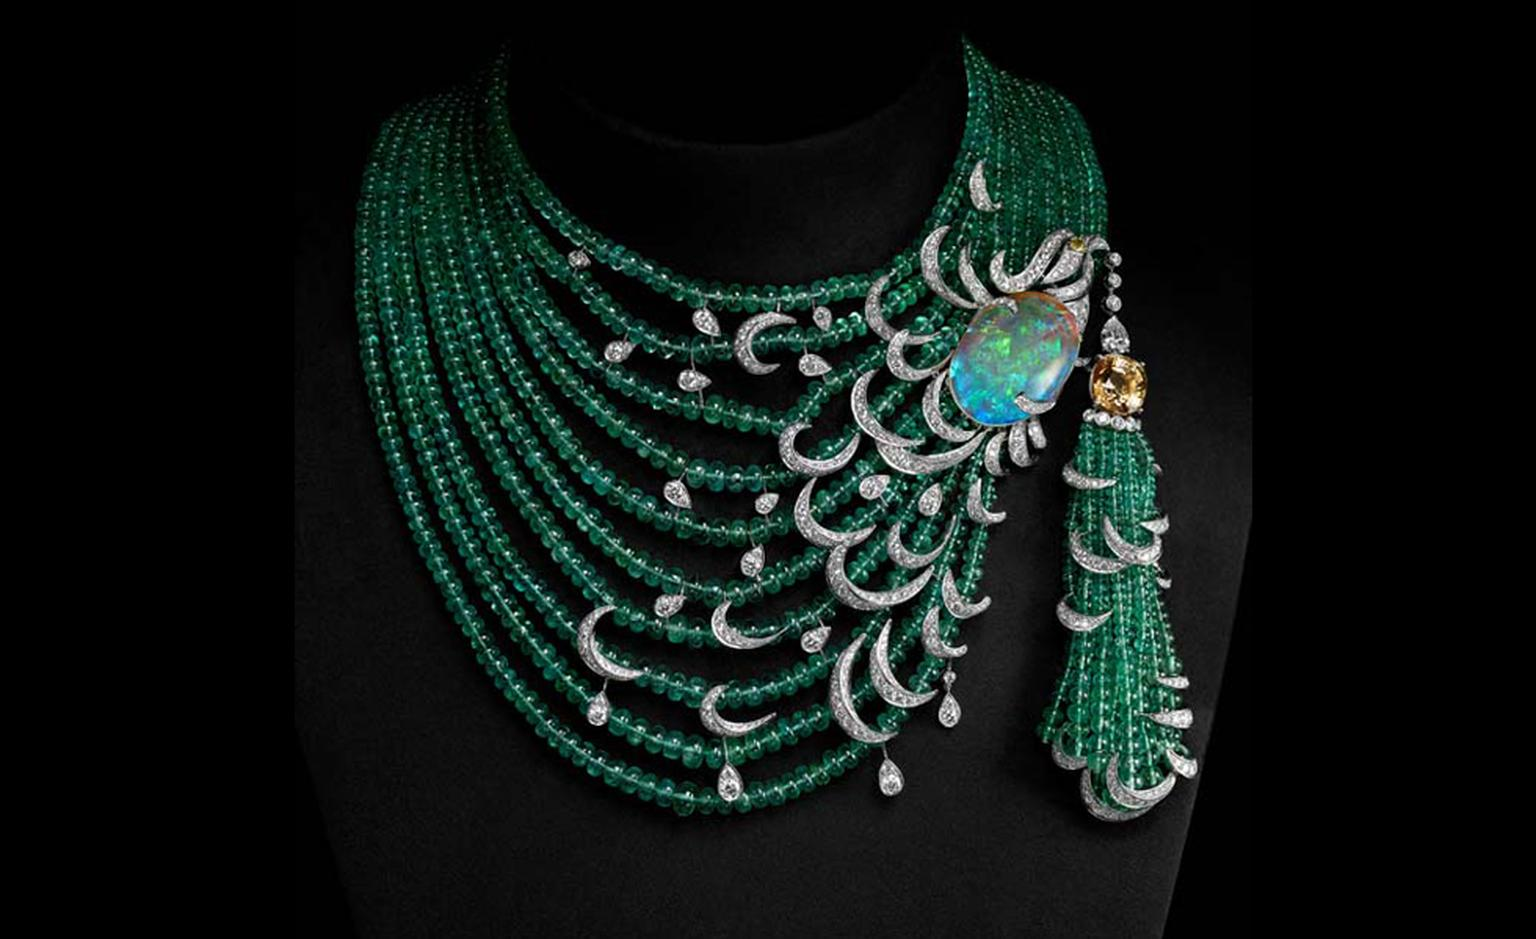 CARTIER. Emerald, opal and diamond necklace with yellow diamond solitaire. POA